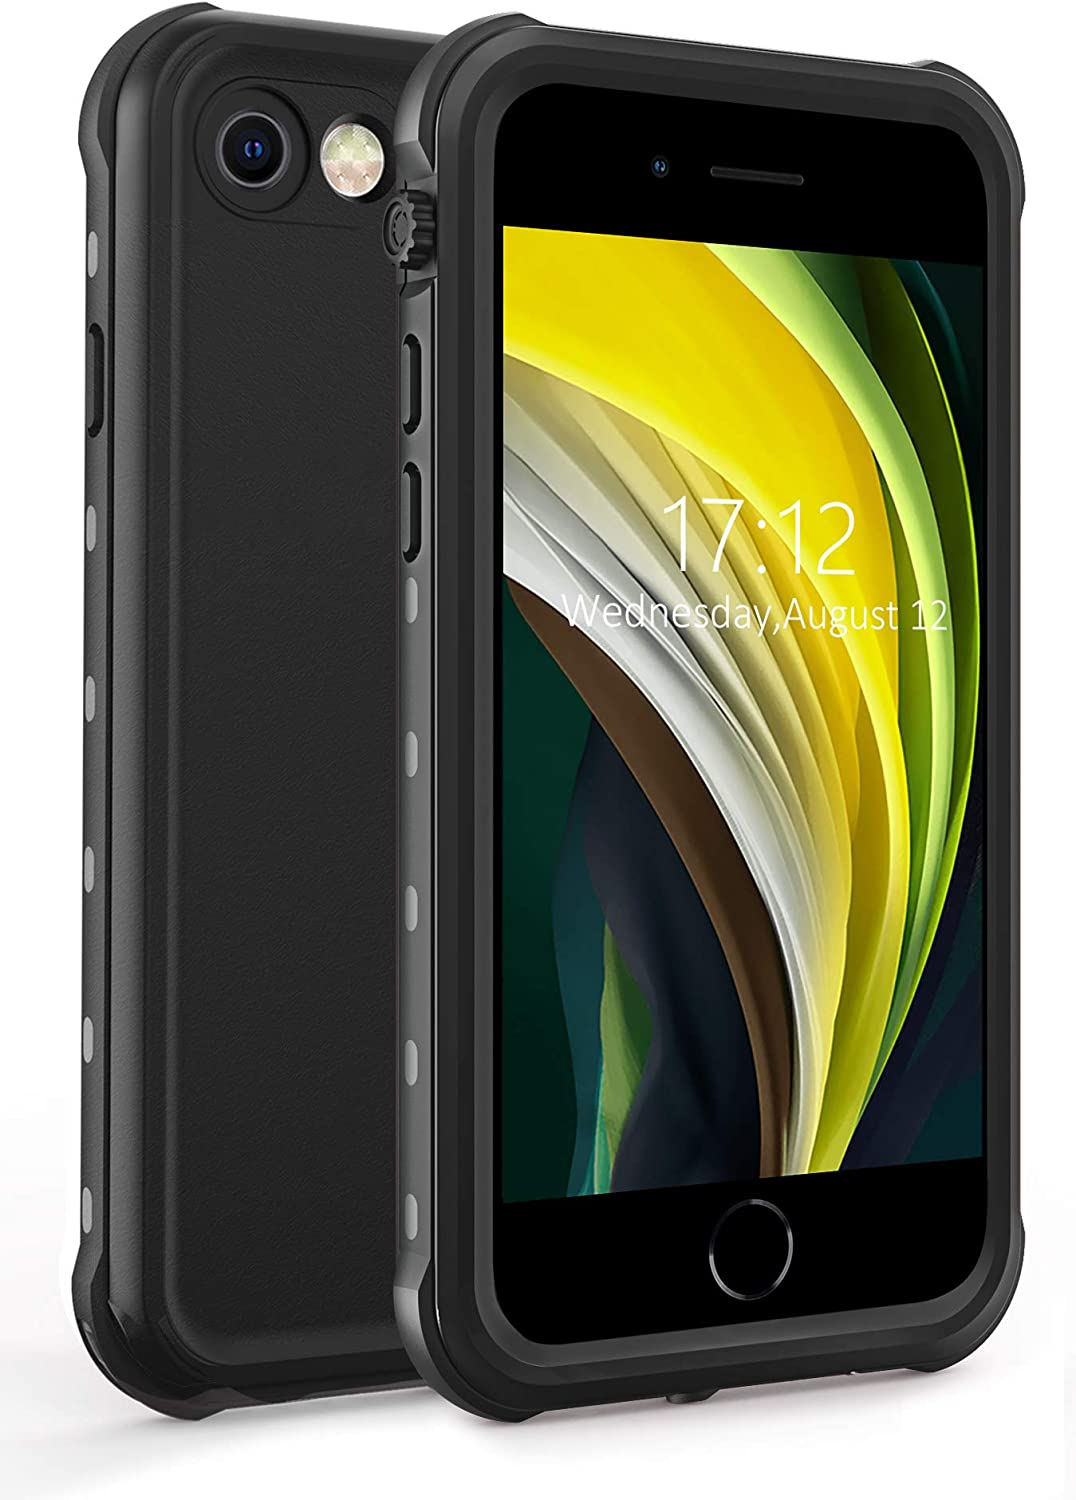 IBELIEF iPhone SE 2020 Waterproof Case,iPhone 7/8 Waterproof Case with Built-in Screen Protector, Full-Body Shockproof Dirtproof Heavy Duty Cover for iPhone SE 2020/7/8 4.7 inch. (Black)